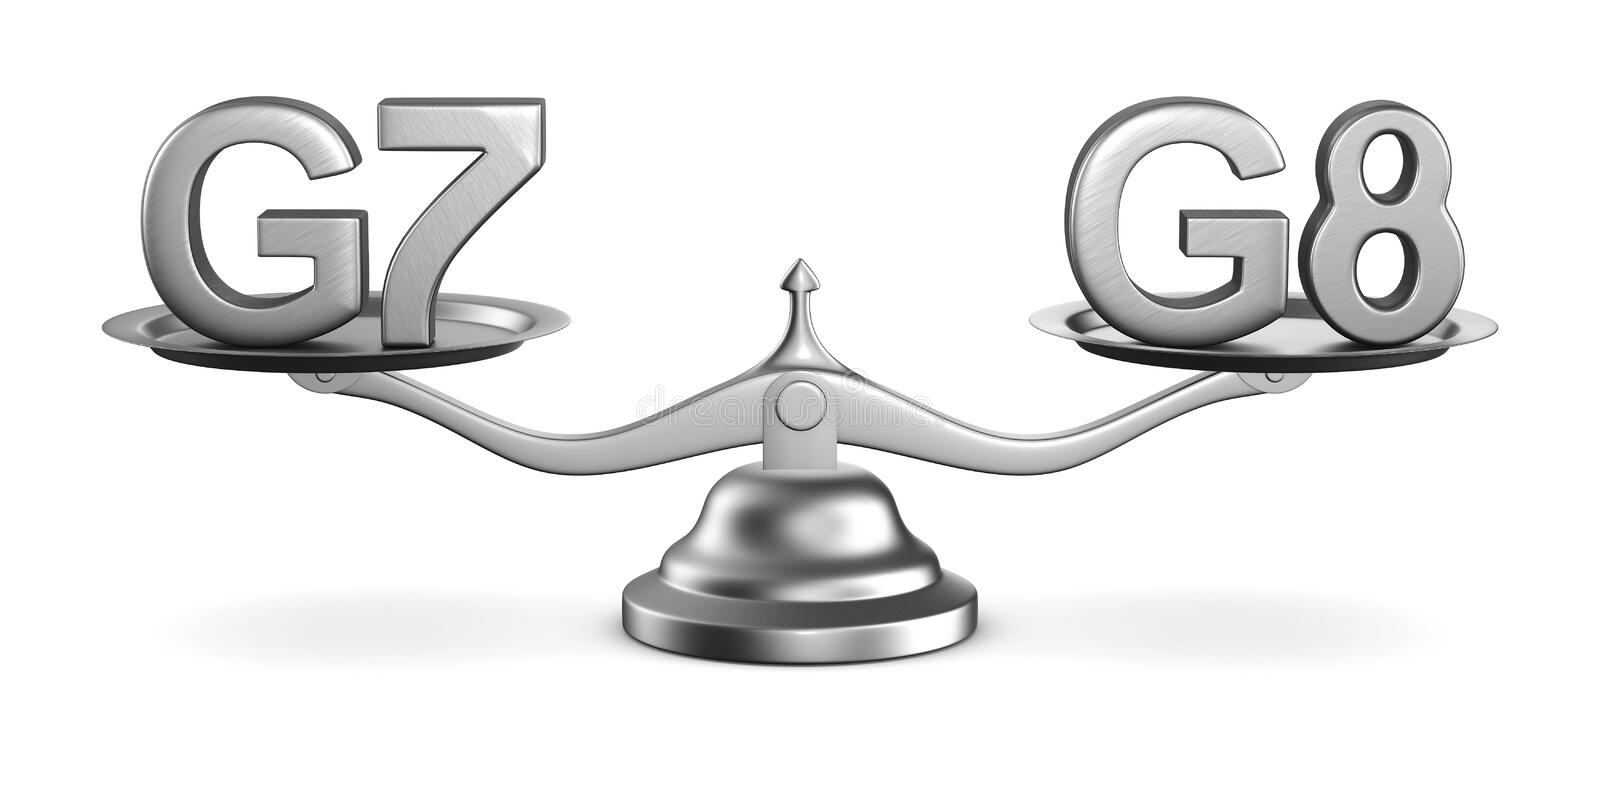 Scales and sign G7, G8 on white background. Isolated 3D illustration.  stock illustration